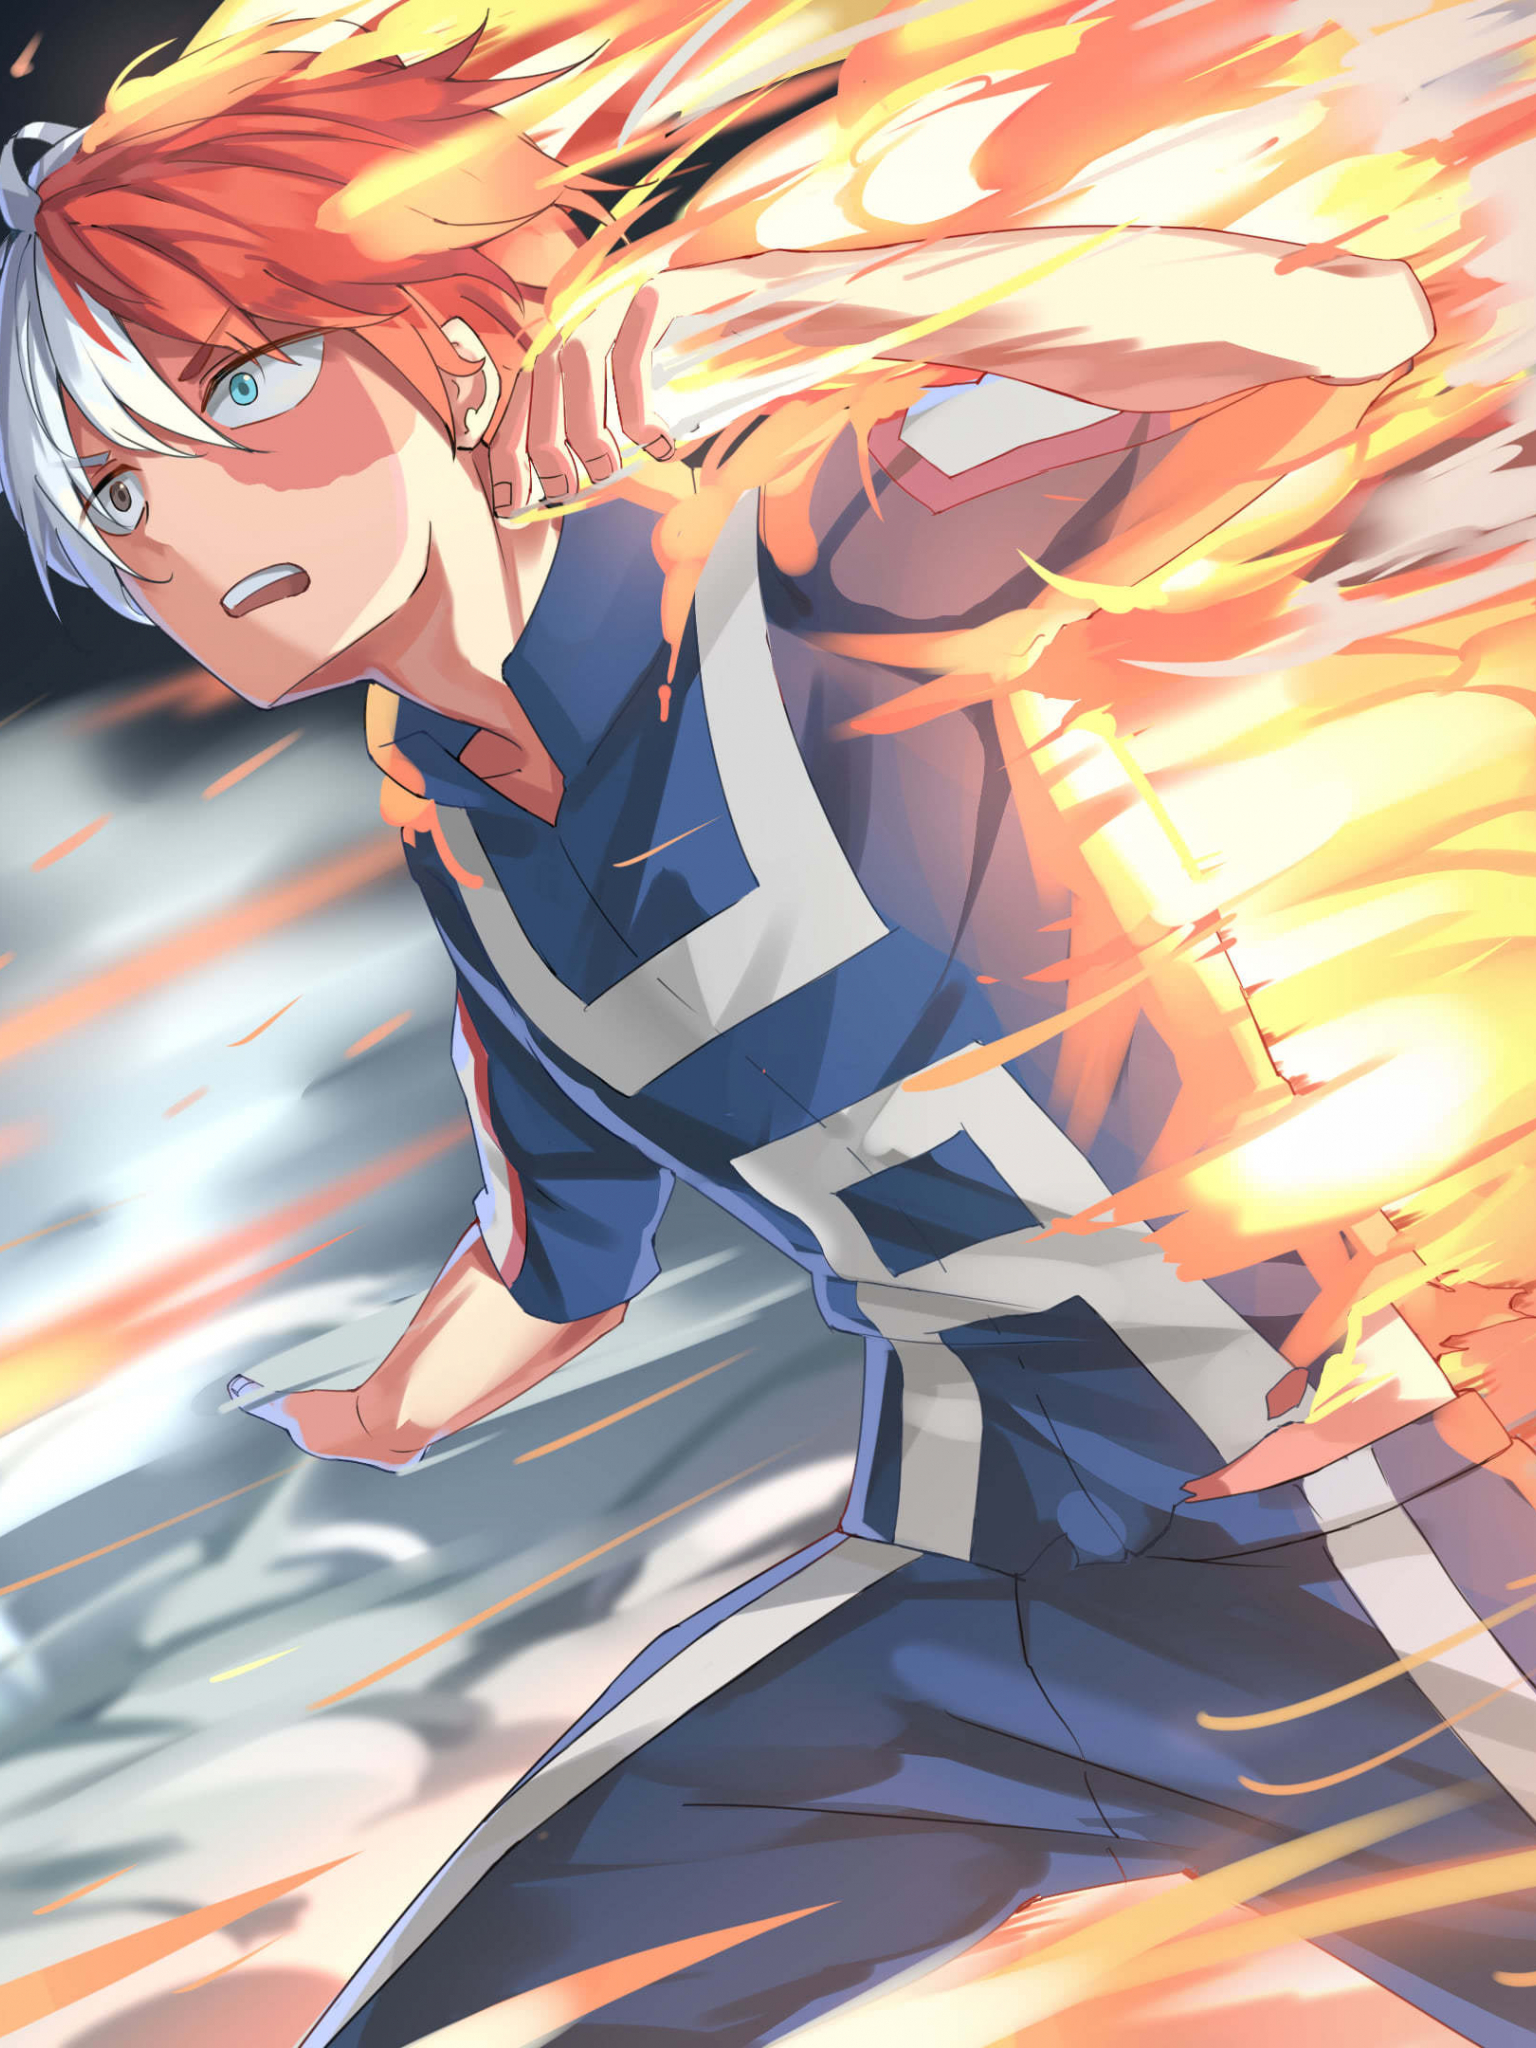 Free Download My Hero Academia Shoto Todoroki Uhd 4k Wallpaper